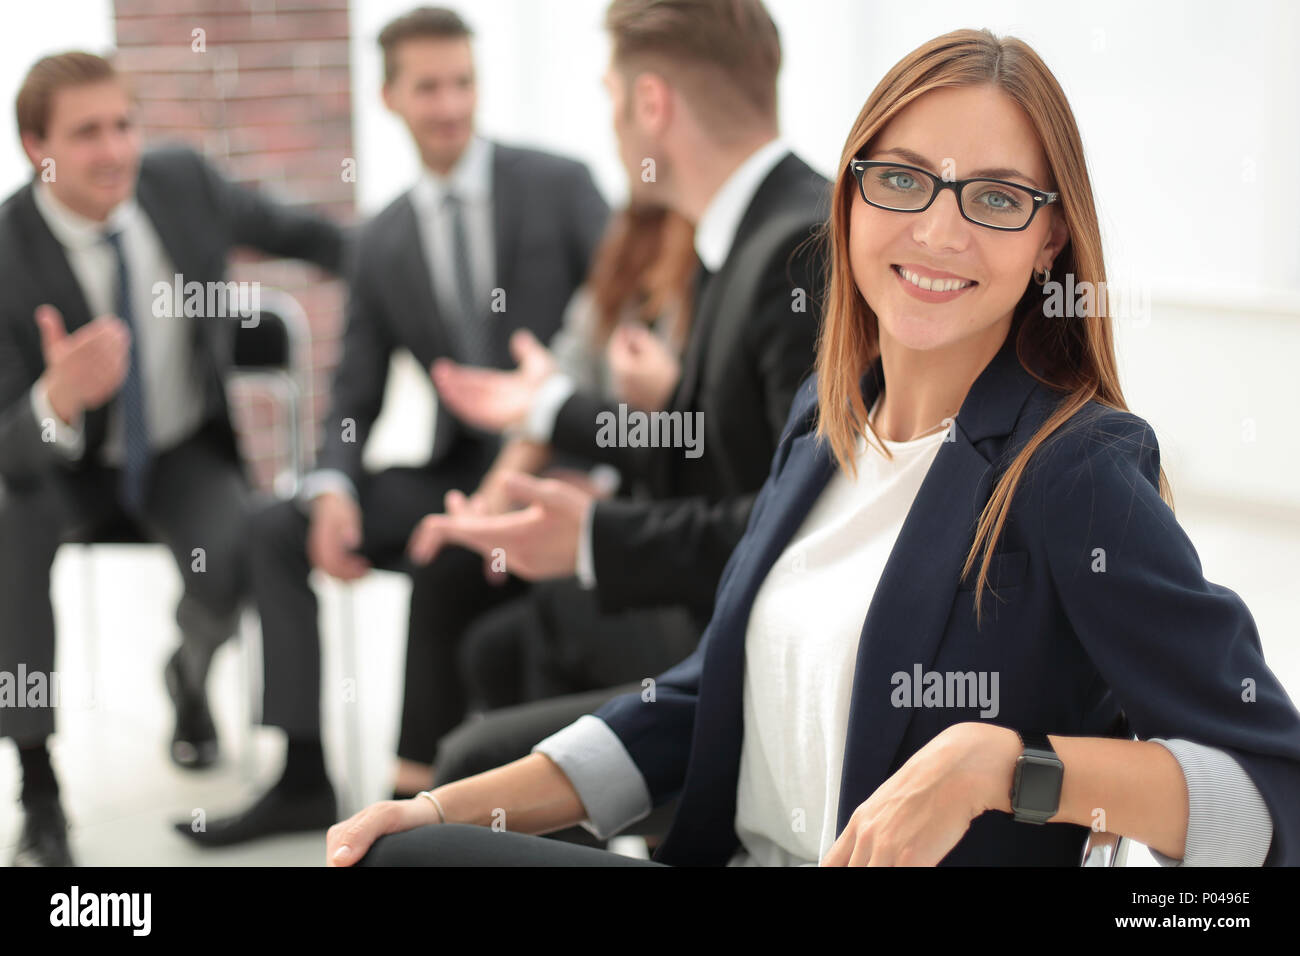 Attractive office worker standing - Stock Image